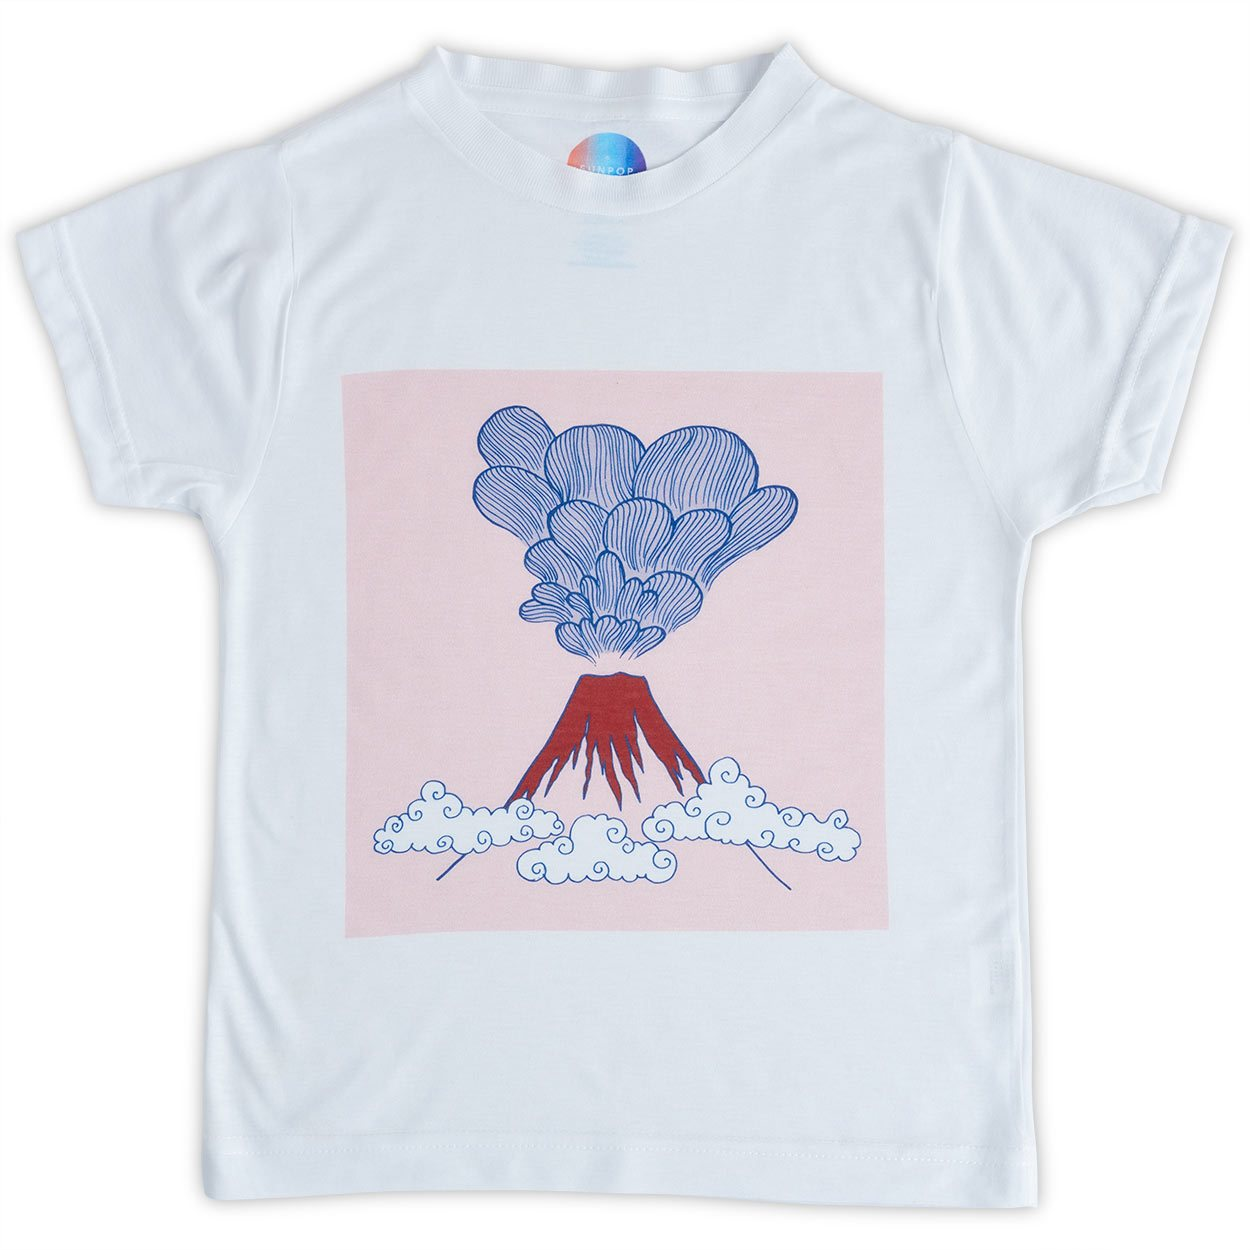 Boys Volcano Graphic T-shirt